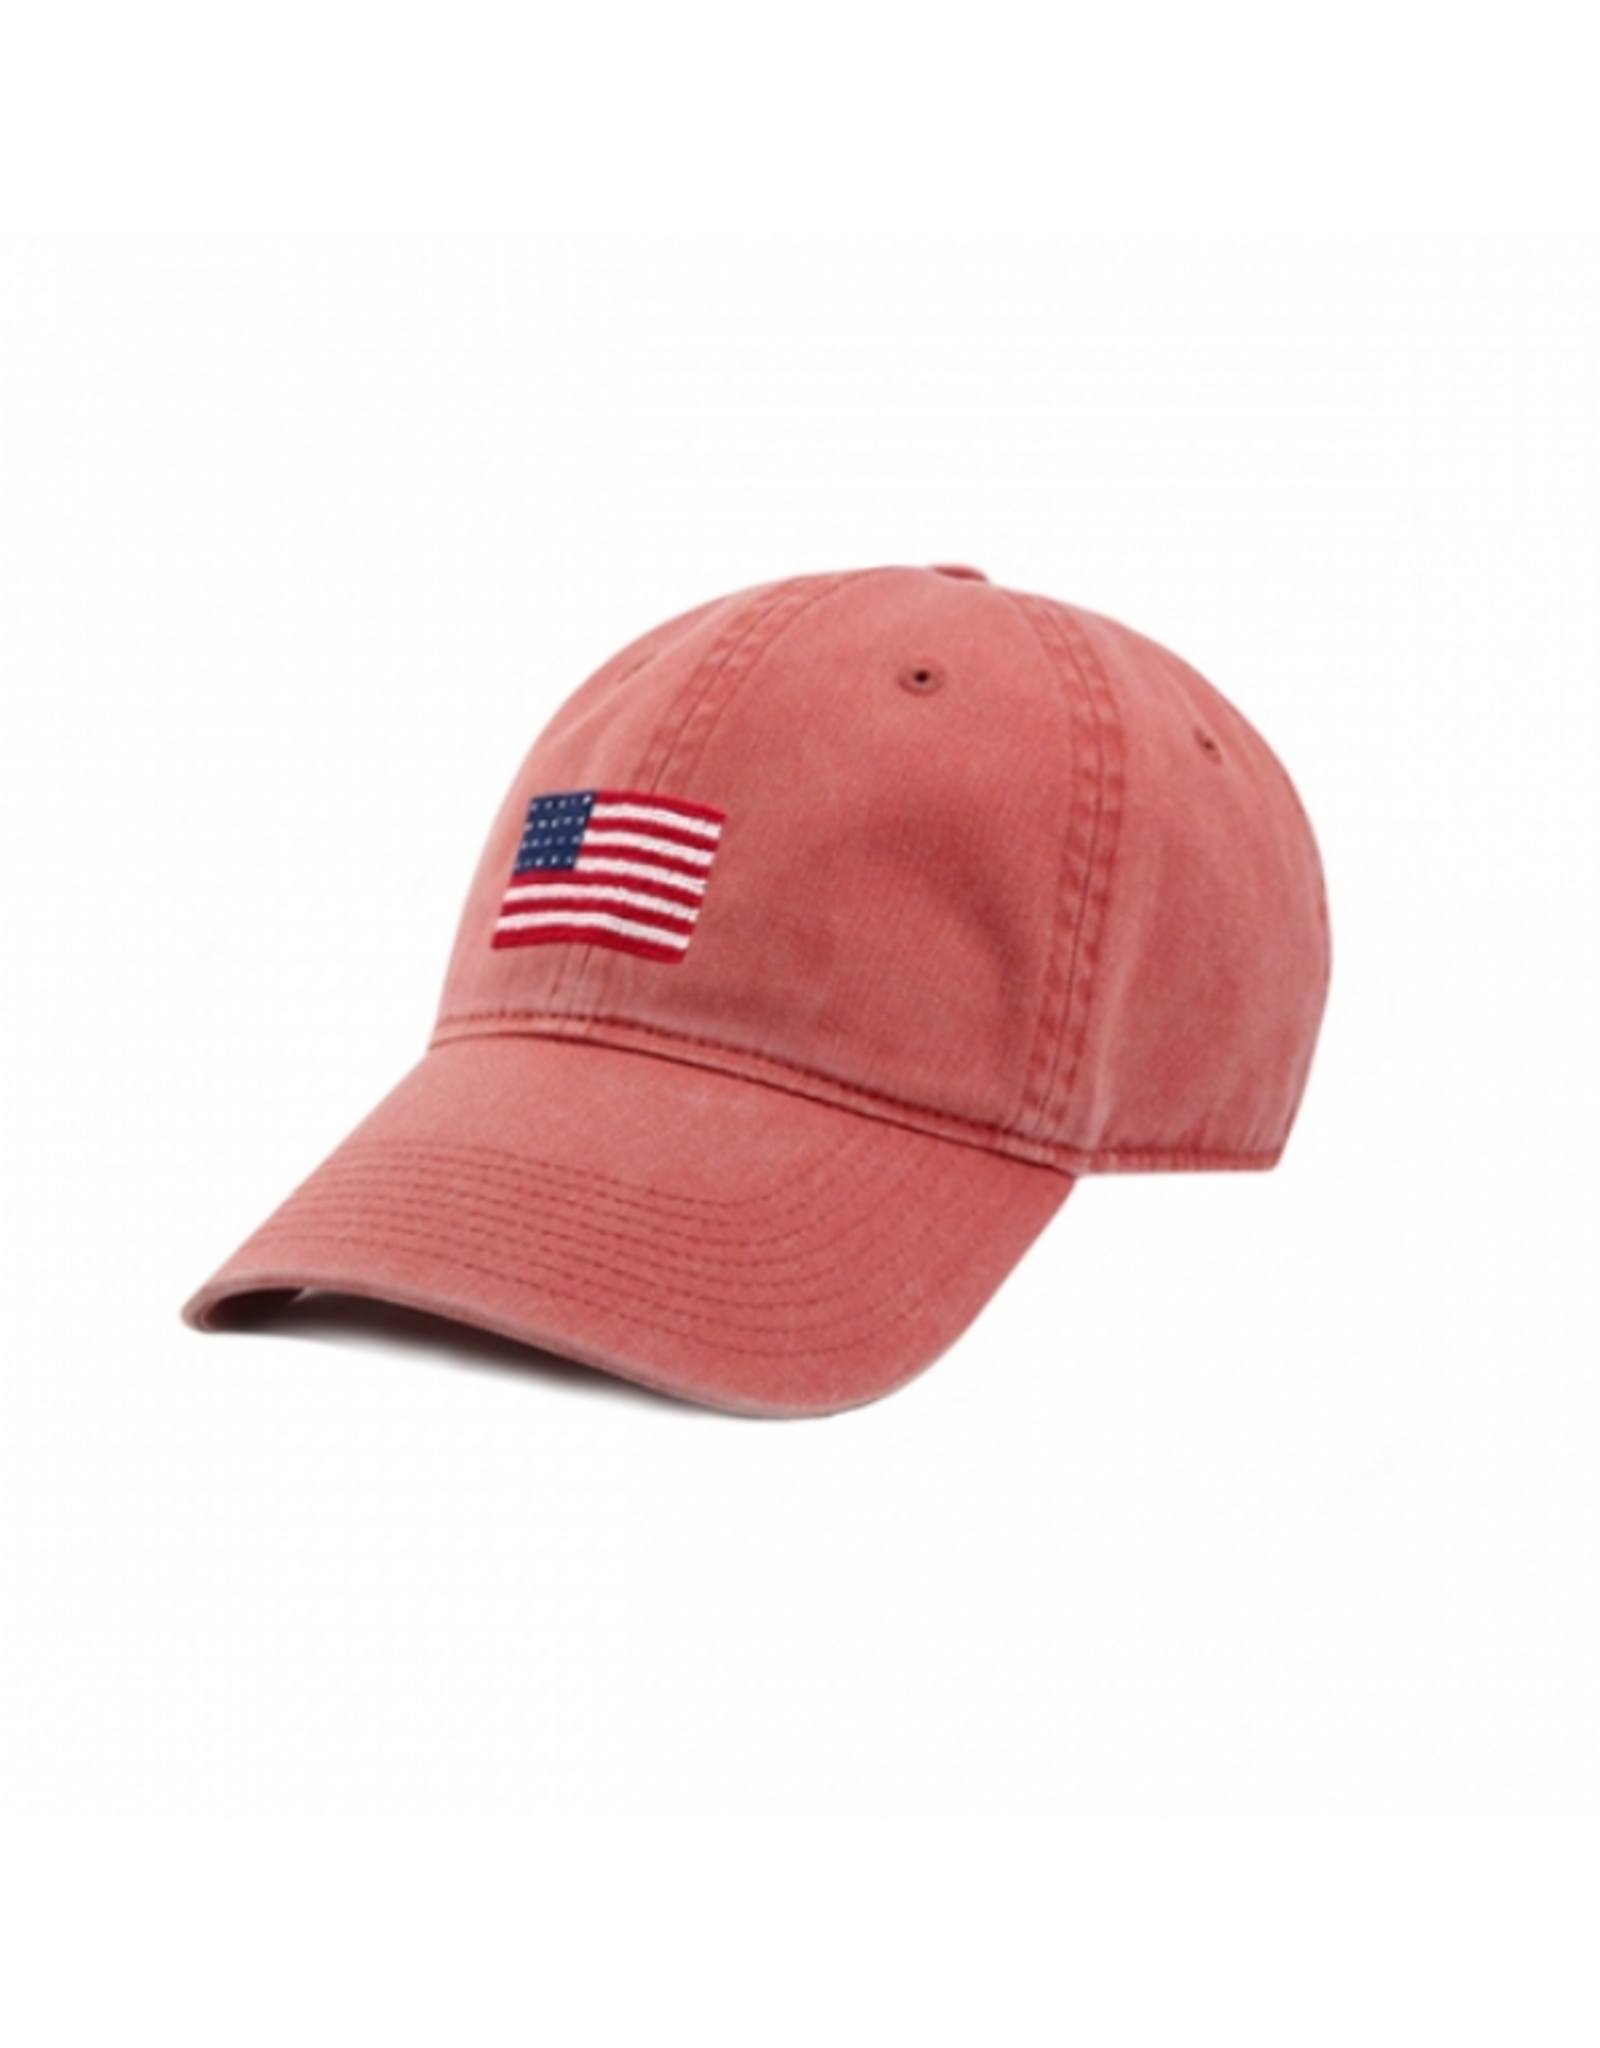 Smathers & Branson S&B Needlepoint Ball Hat, American Flag on Nantucket Red